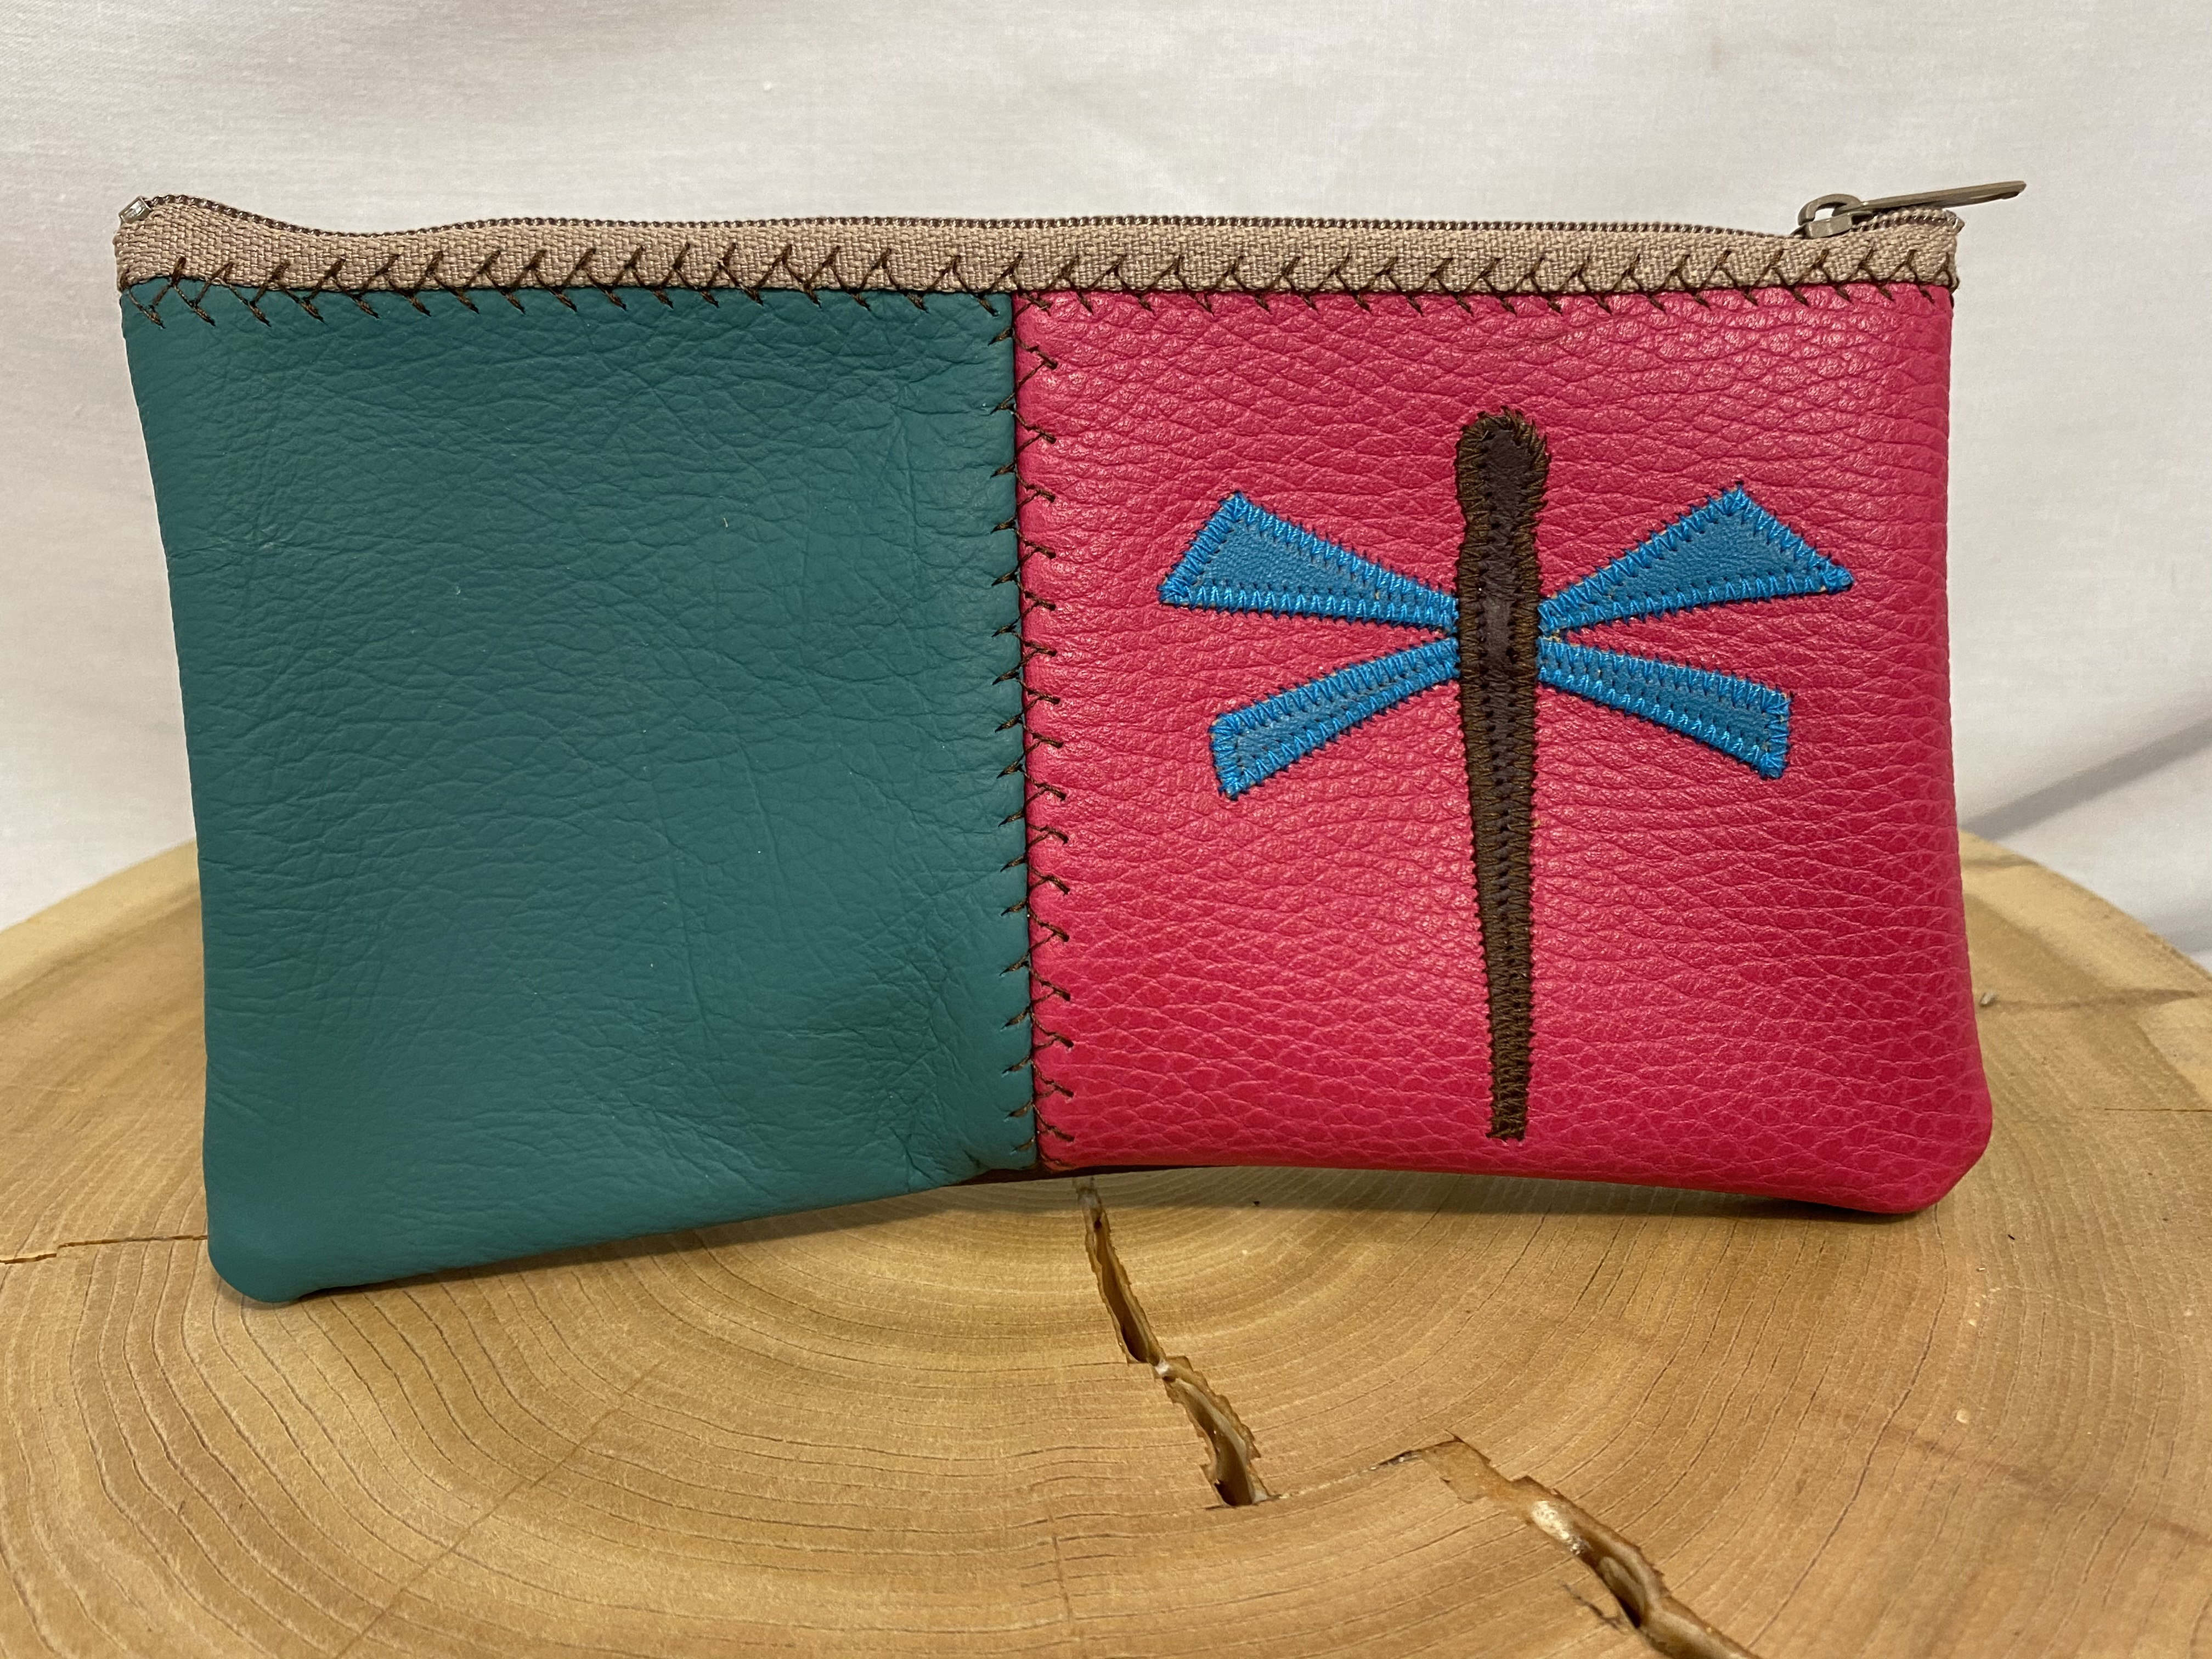 Dragonfly Leather Zip Pouch